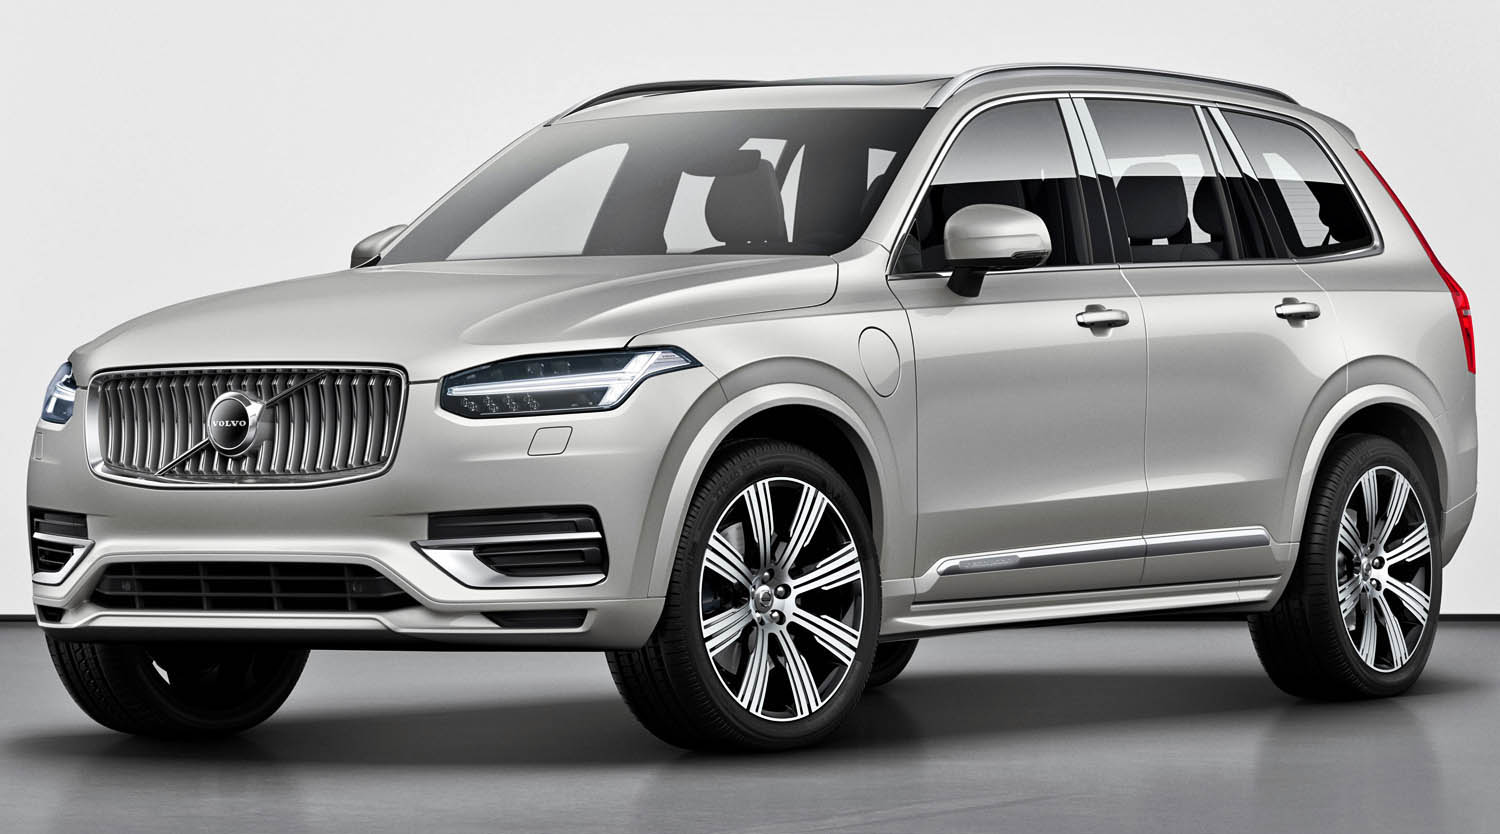 Volvo XC90 – The Swedish Company's Top-Of-The-Line Flagship